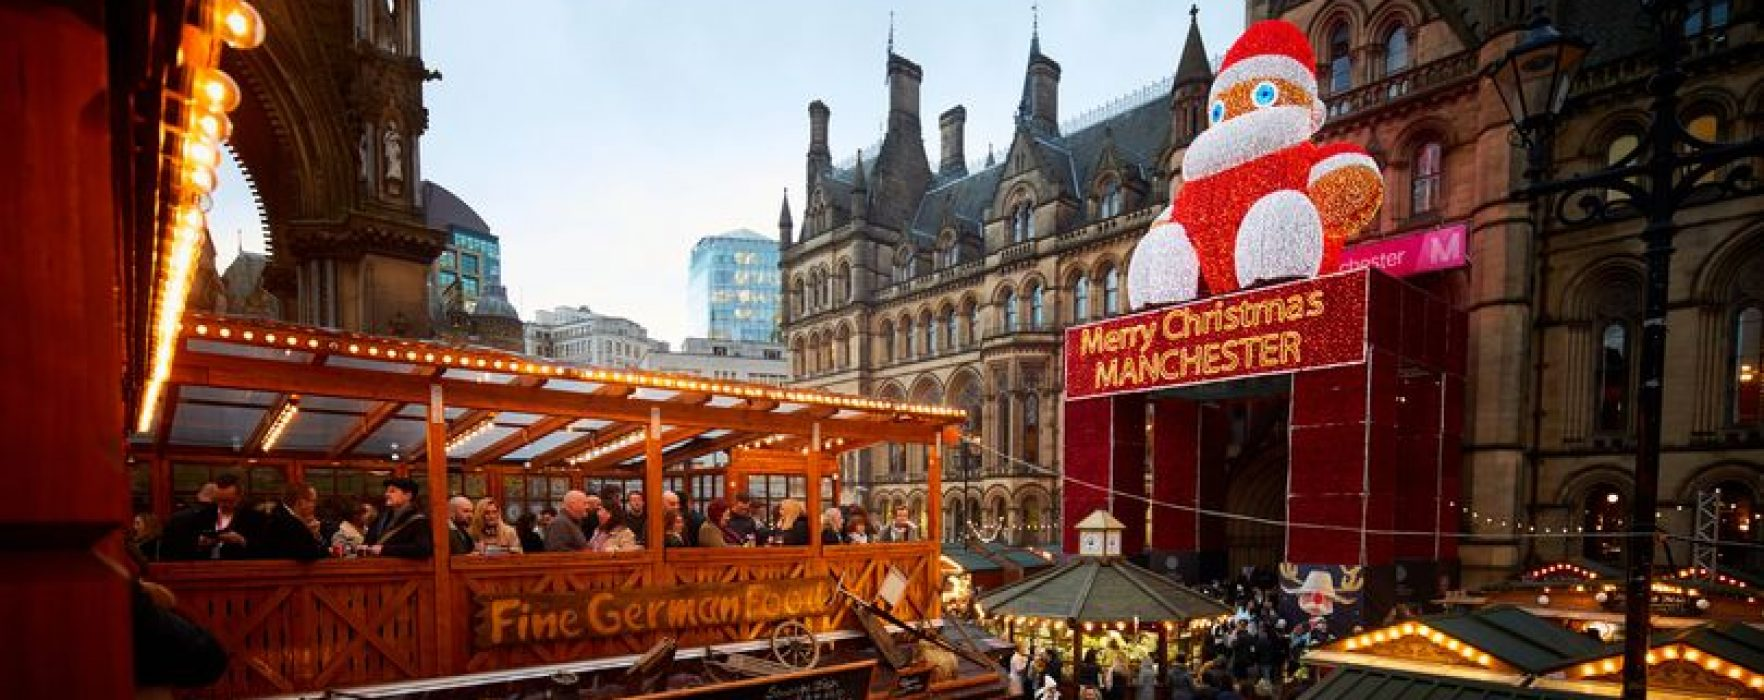 Christmas Markets- is their time over?